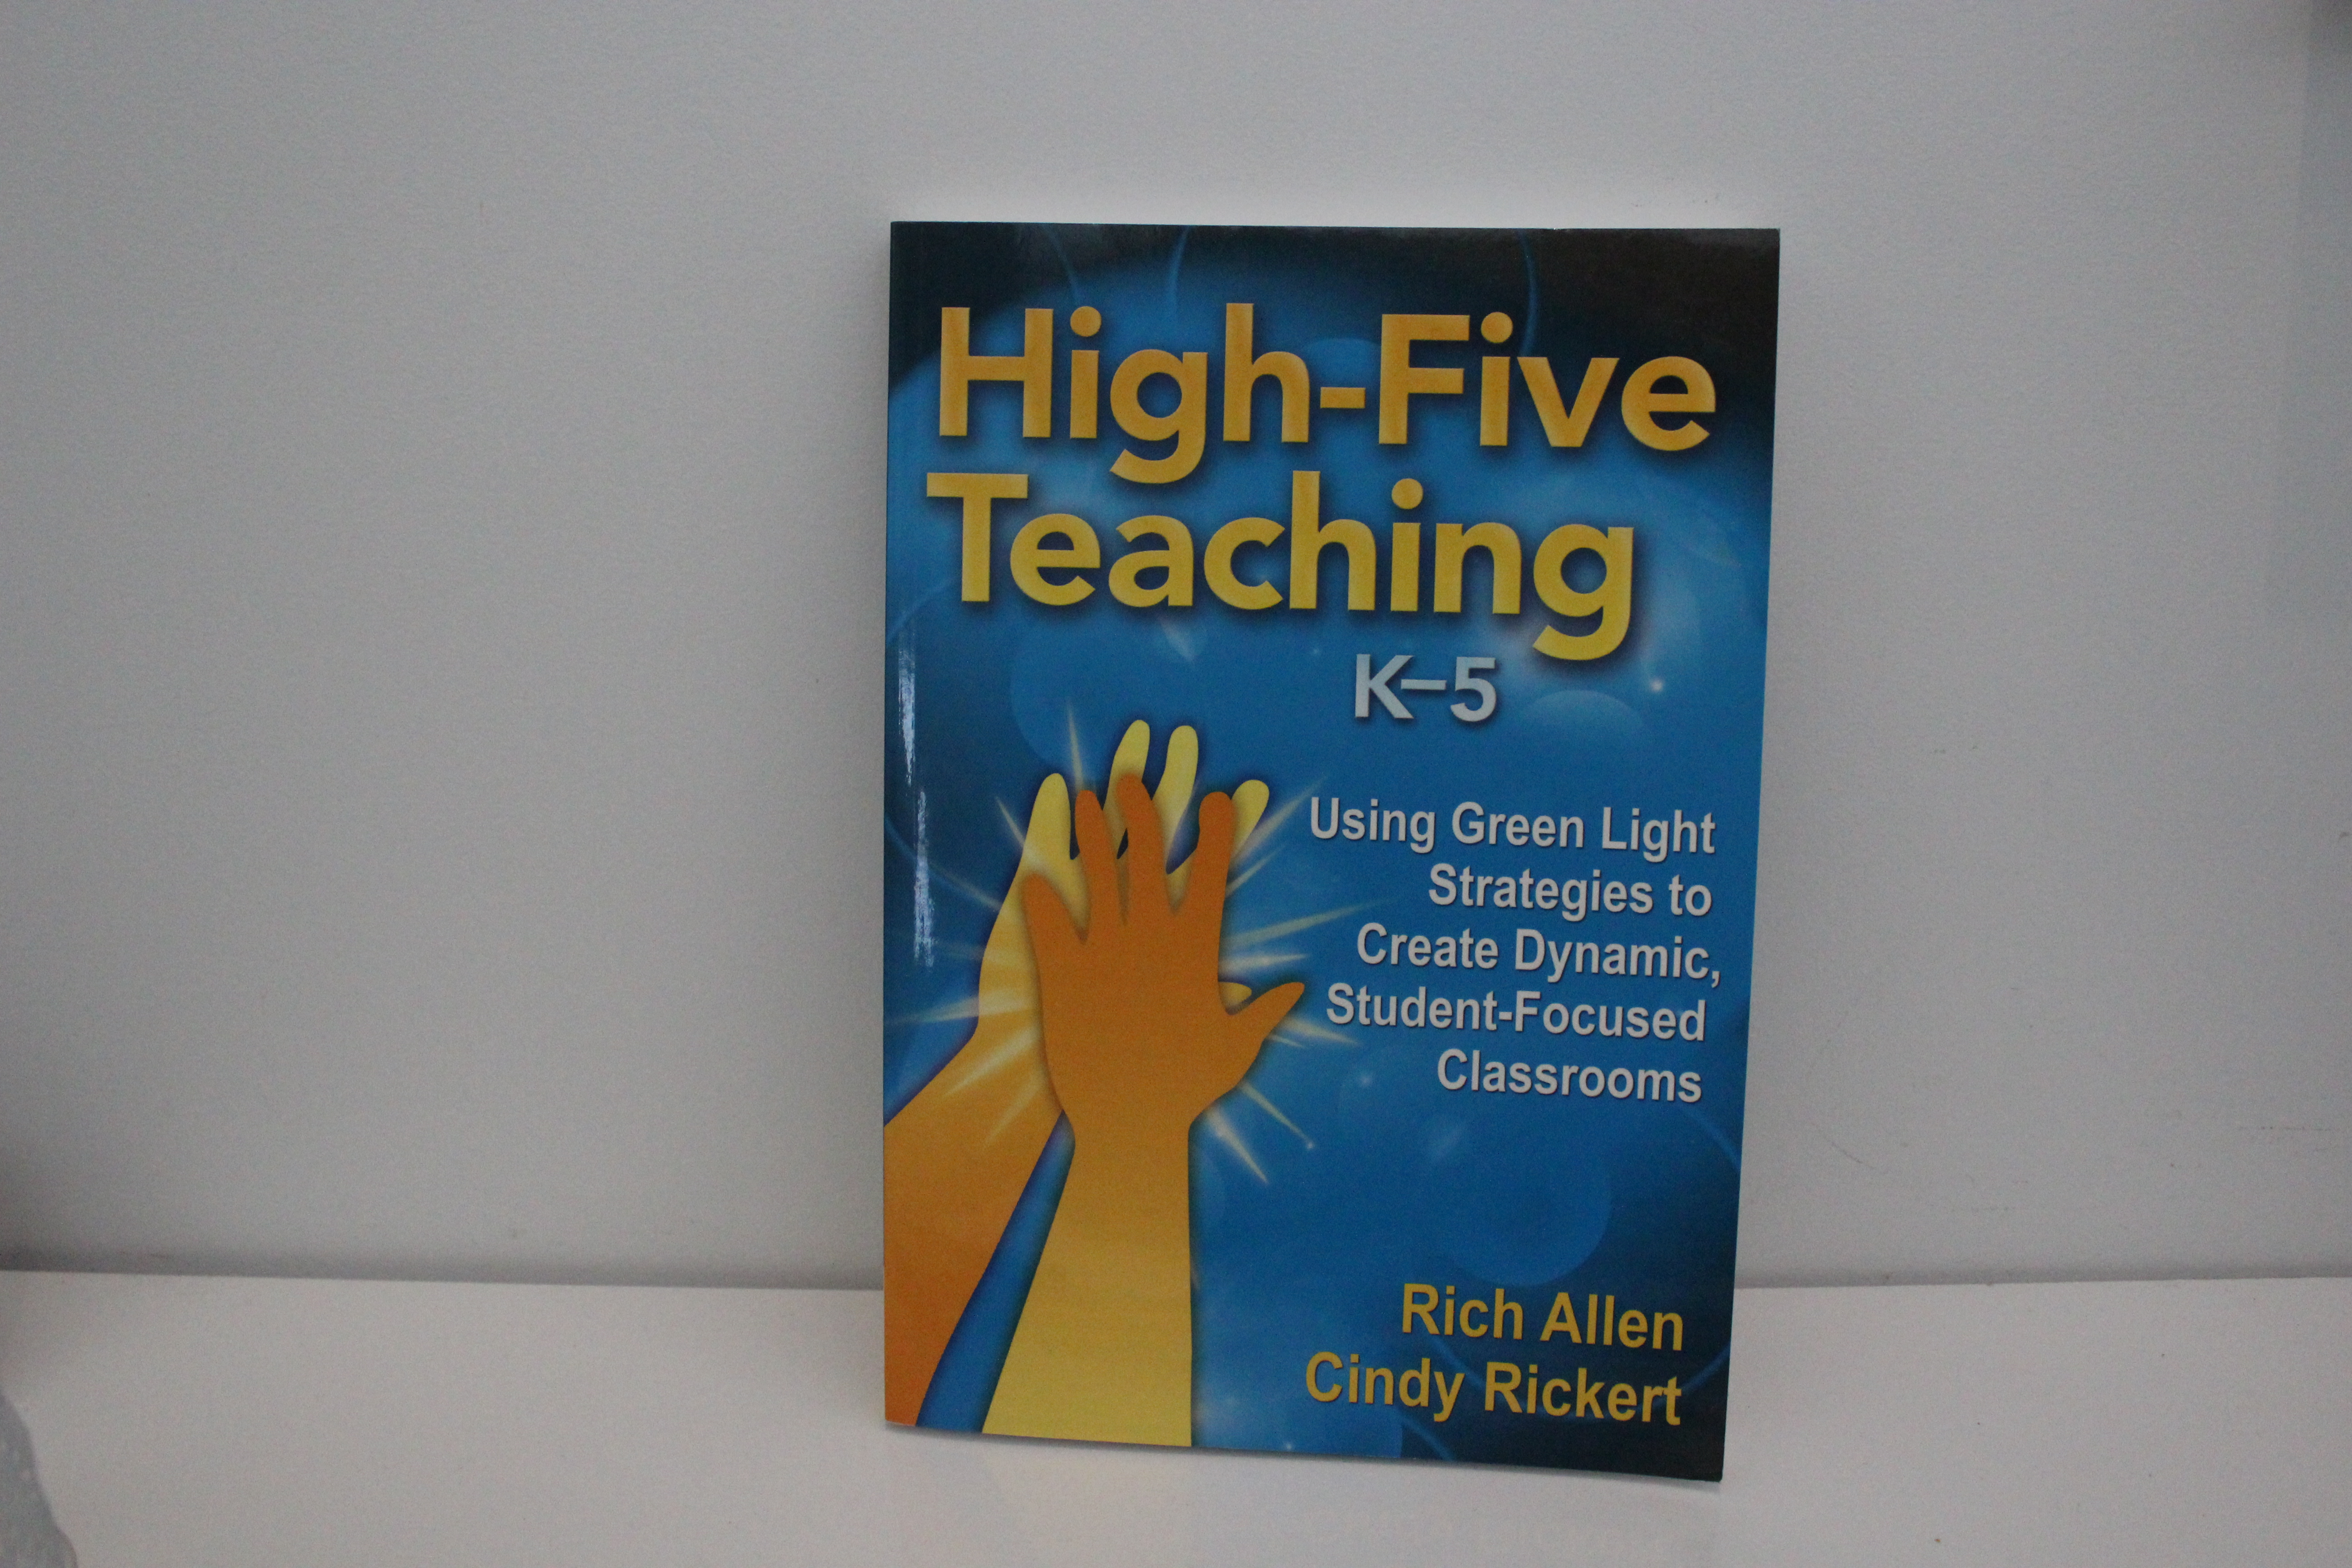 High-Five Teaching book